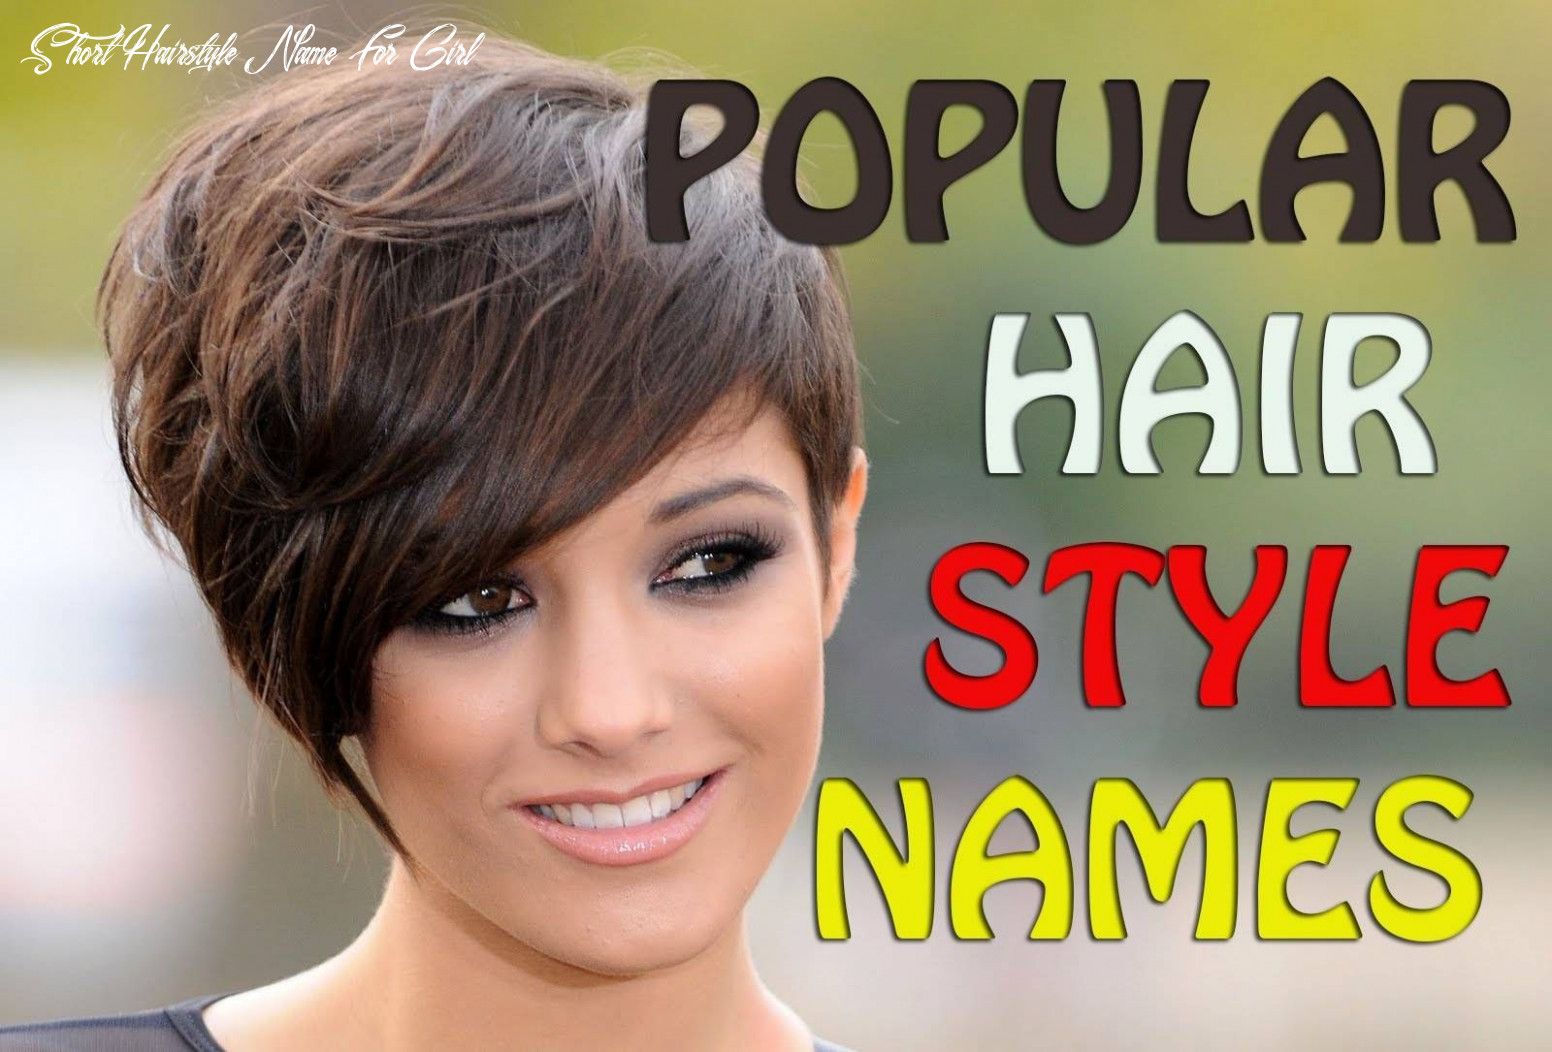 The short hairstyle name   hairstyle names, womens hairstyles